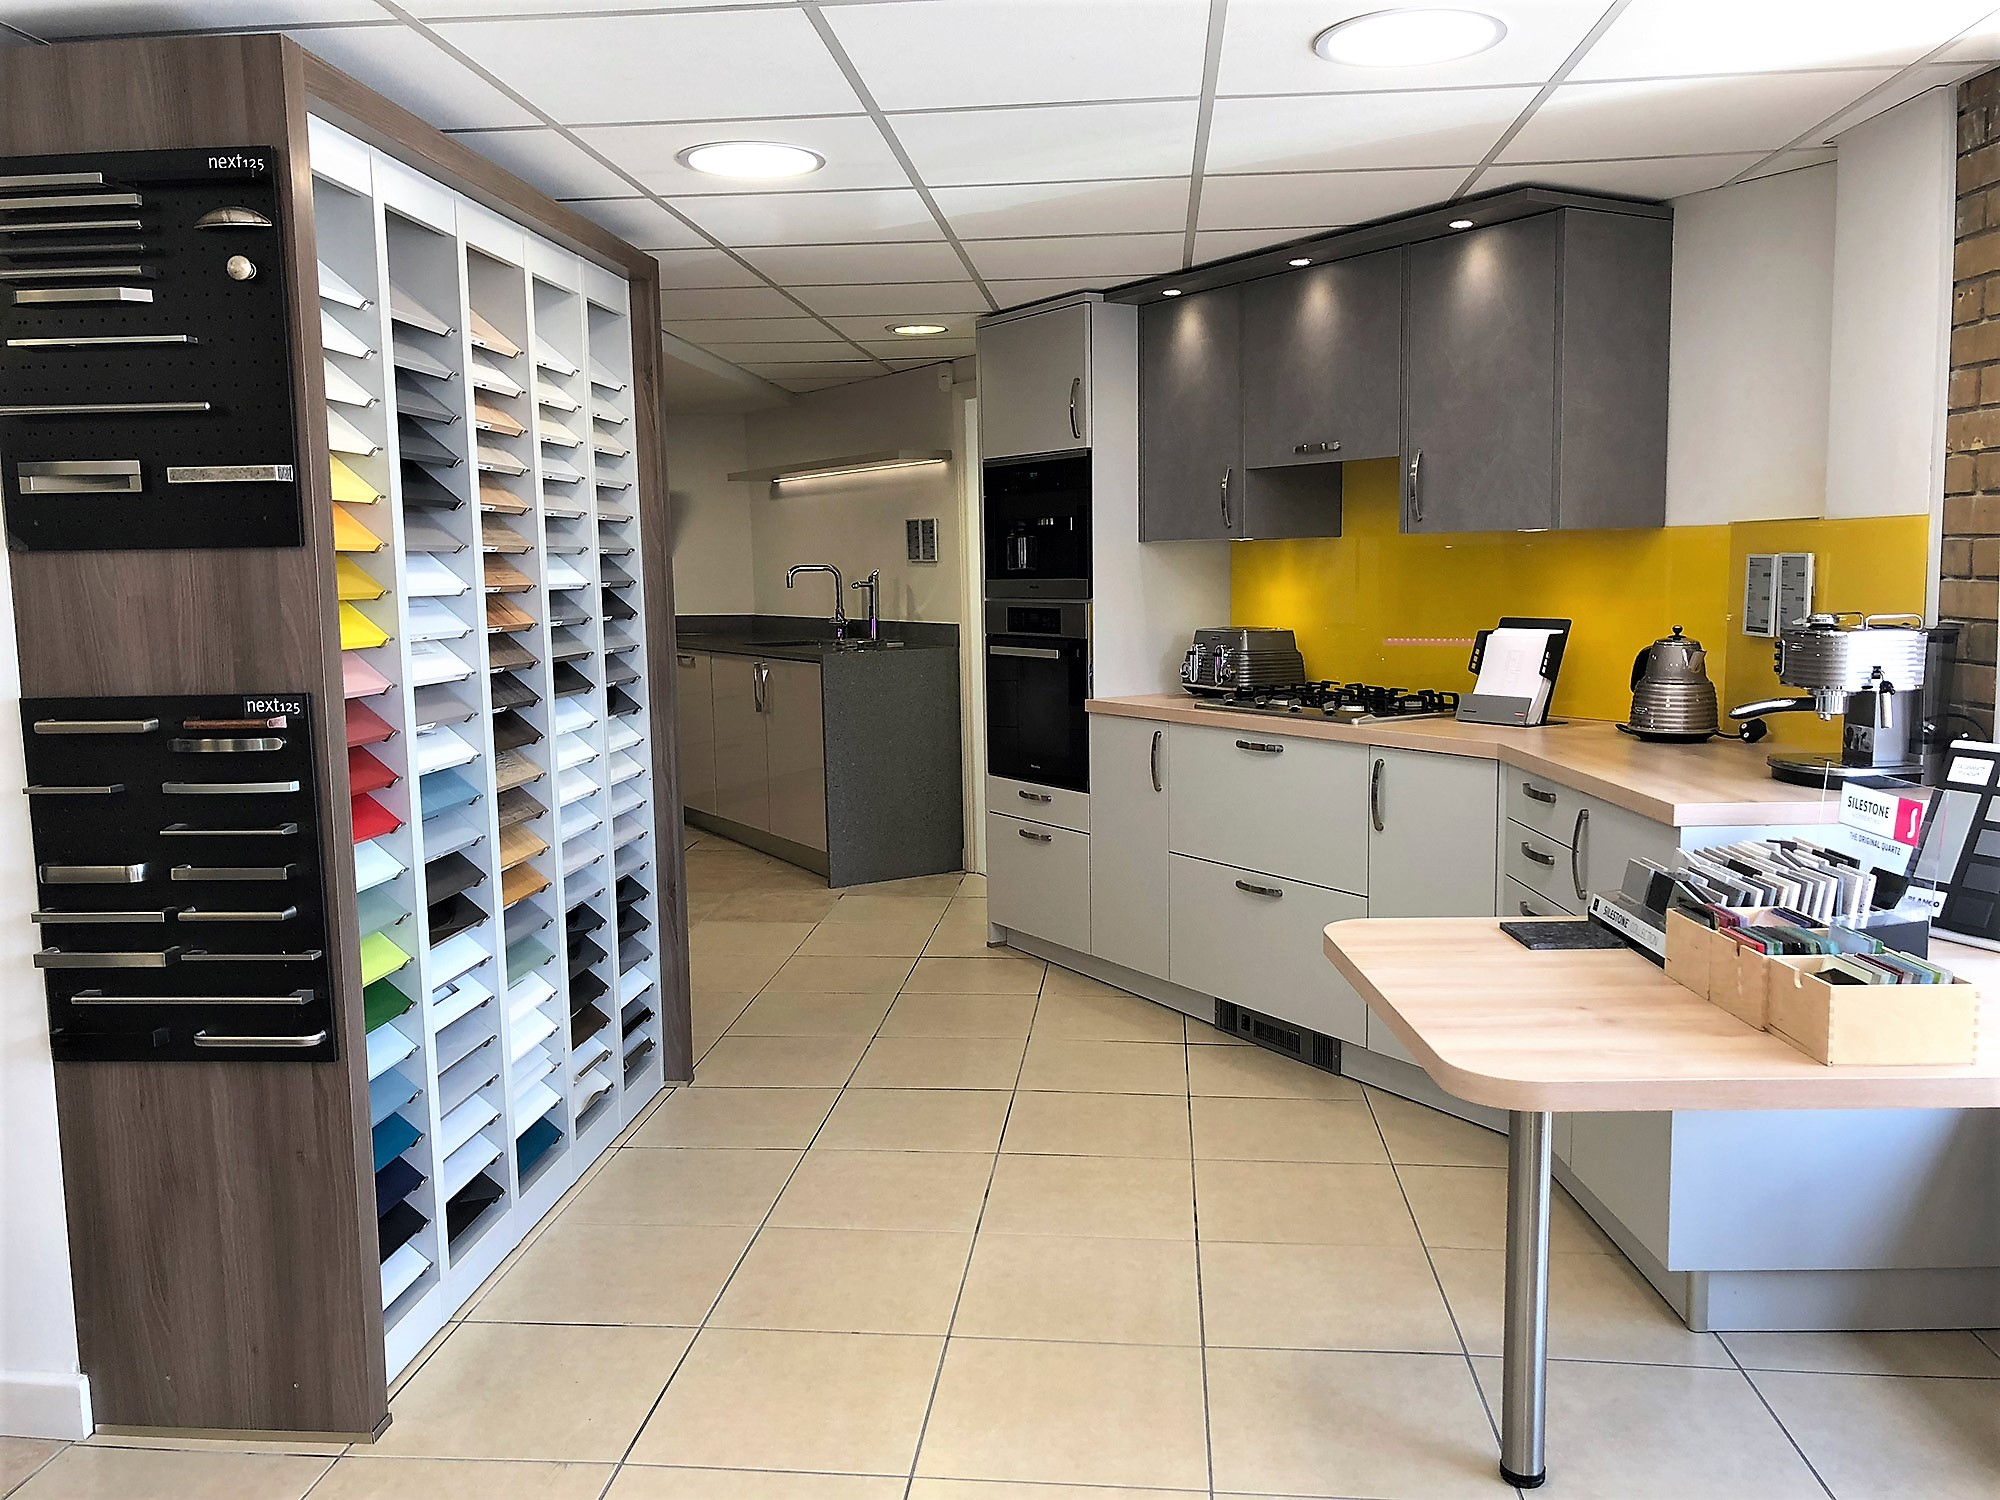 Kitchen Company How To Find A Reputable Kitchen Company Weizter Kitchens